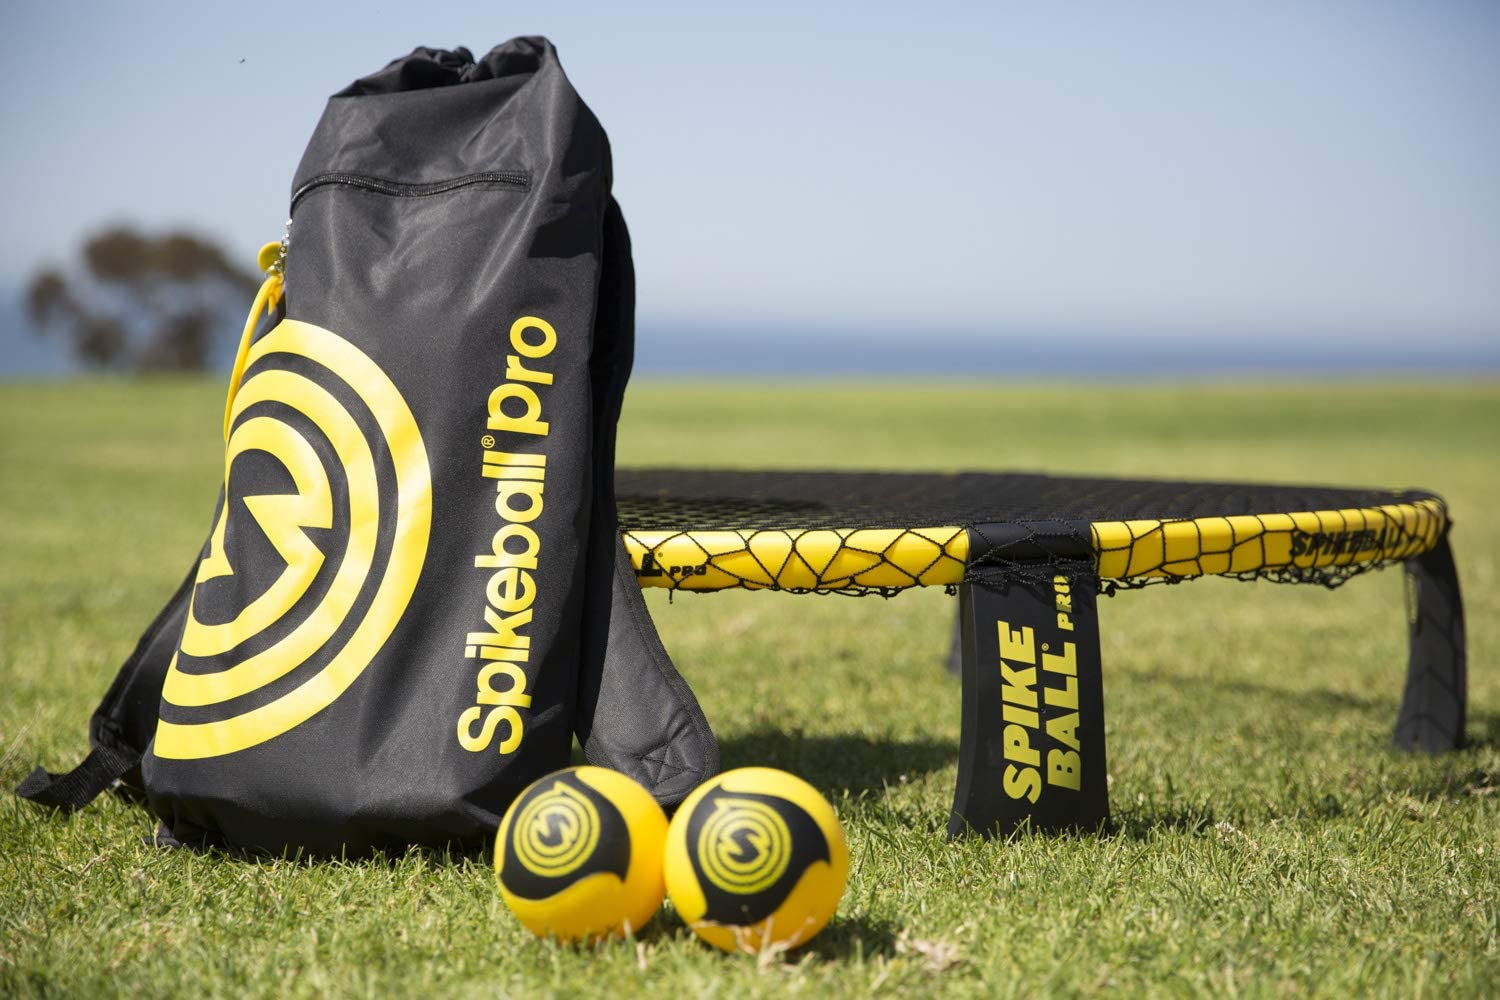 Spikeball Pro Kit (Tournament Edition) - Includes Upgraded Stronger Playing Net, New Balls Designed to Add Spin, Portable Ball Pump Gauge, Backpack - ...